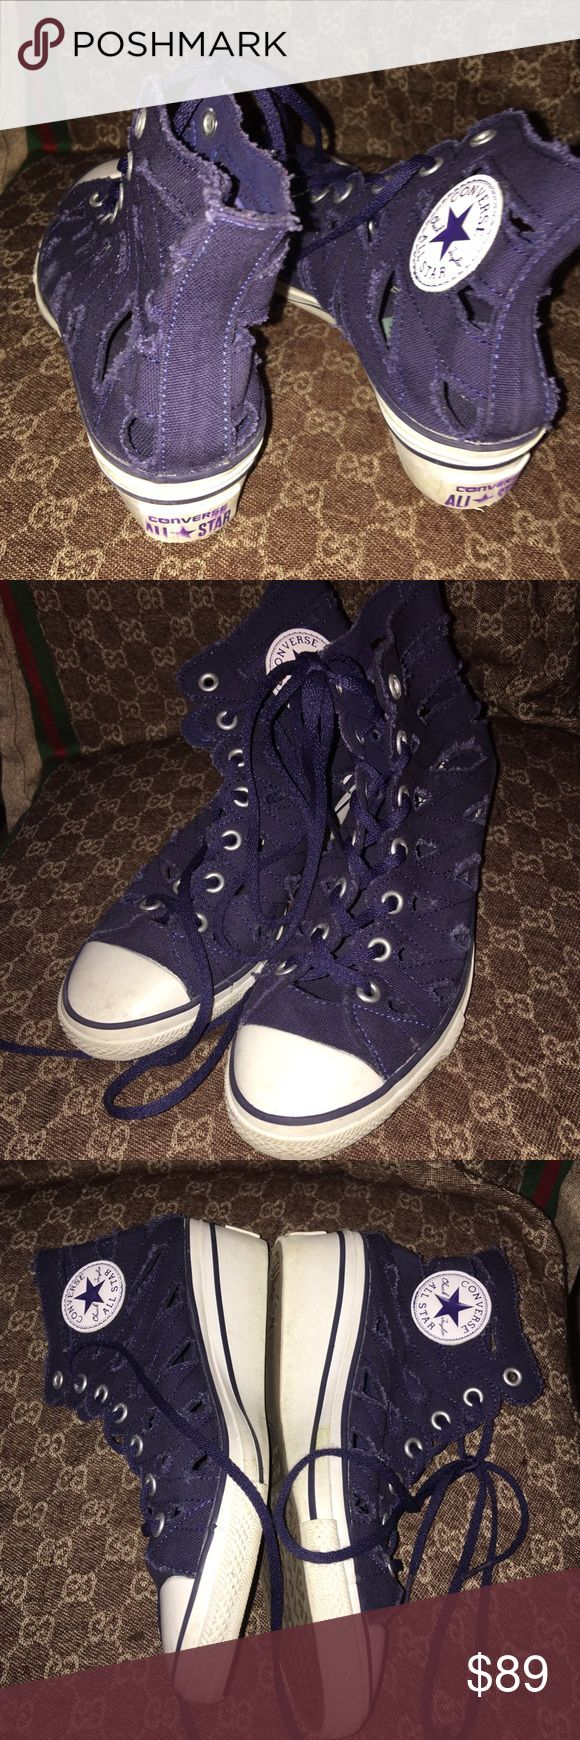 Authentic ladies converse😘😘😘 Like new... Tv higher Converse Shoes Heeled Boots